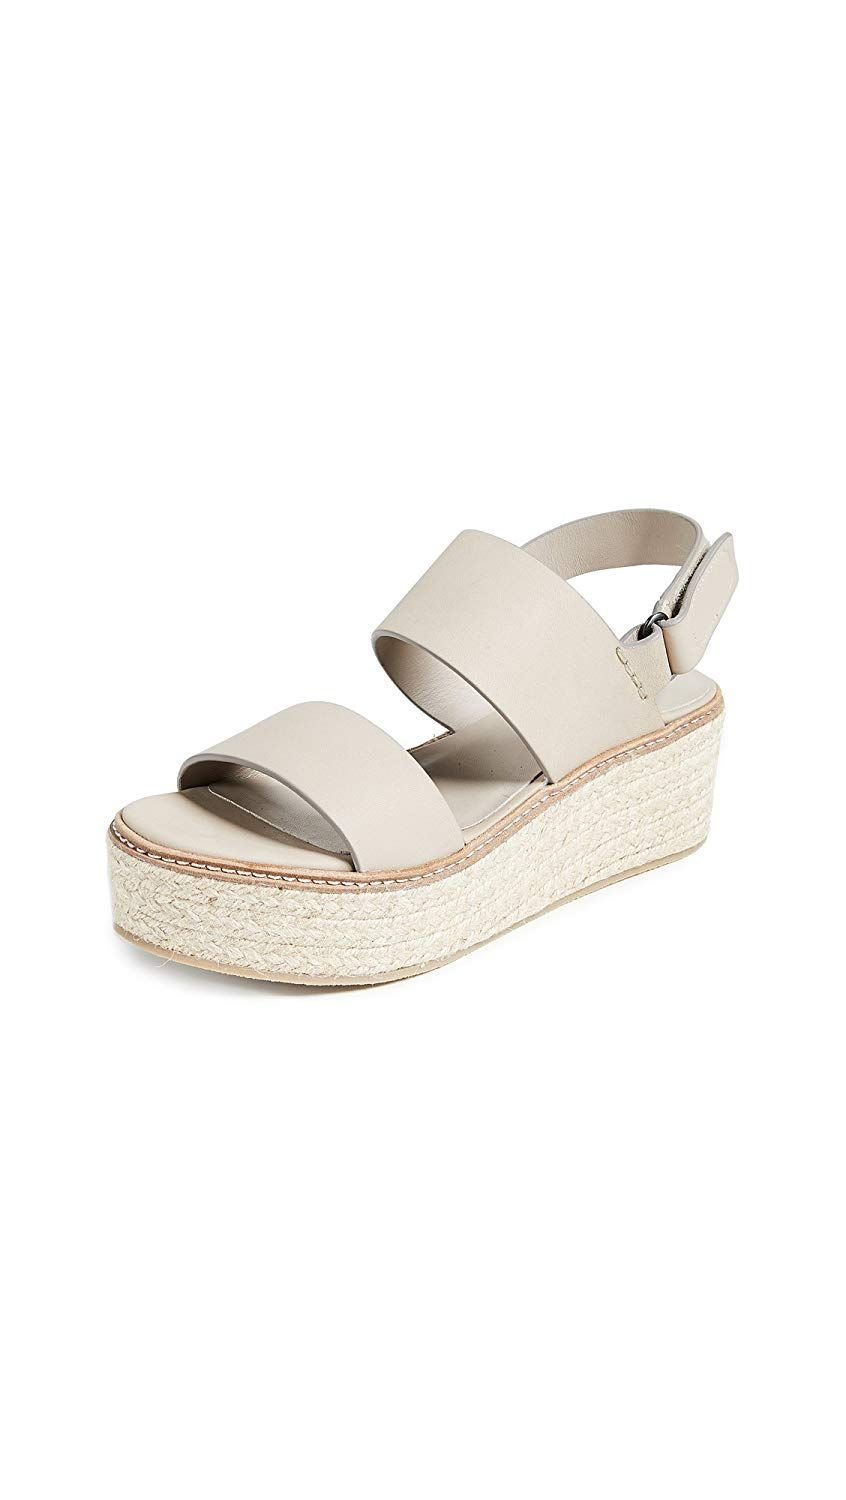 02477ba15061 Vince Women s Janet Wedge Sandals     Very nice of your presence to drop by  to see our photo. (This is our affiliate link)   womensplatformandwedgesandals